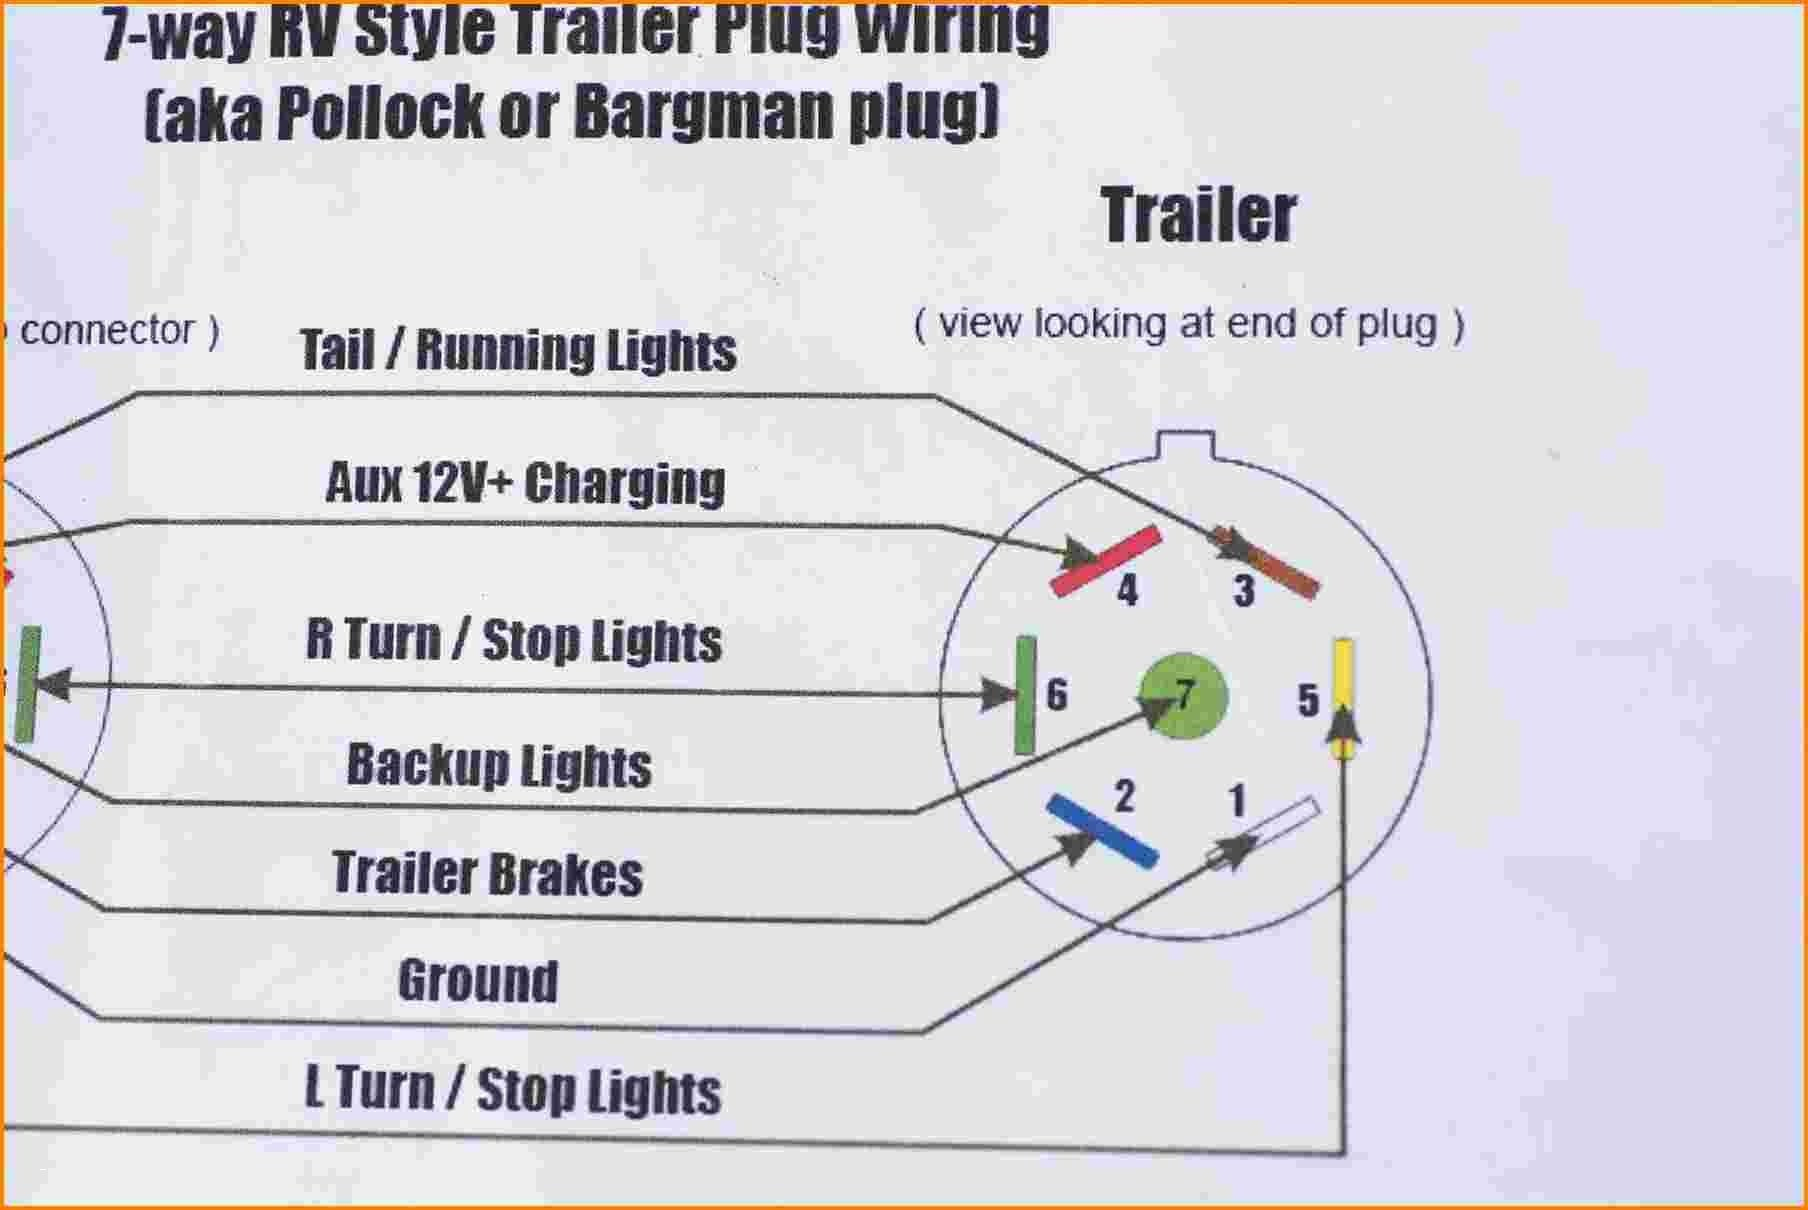 Hopkins 7 Pole Trailer Wiring Diagram | Wiring Diagram - 7 Pole Trailer Wiring Diagram